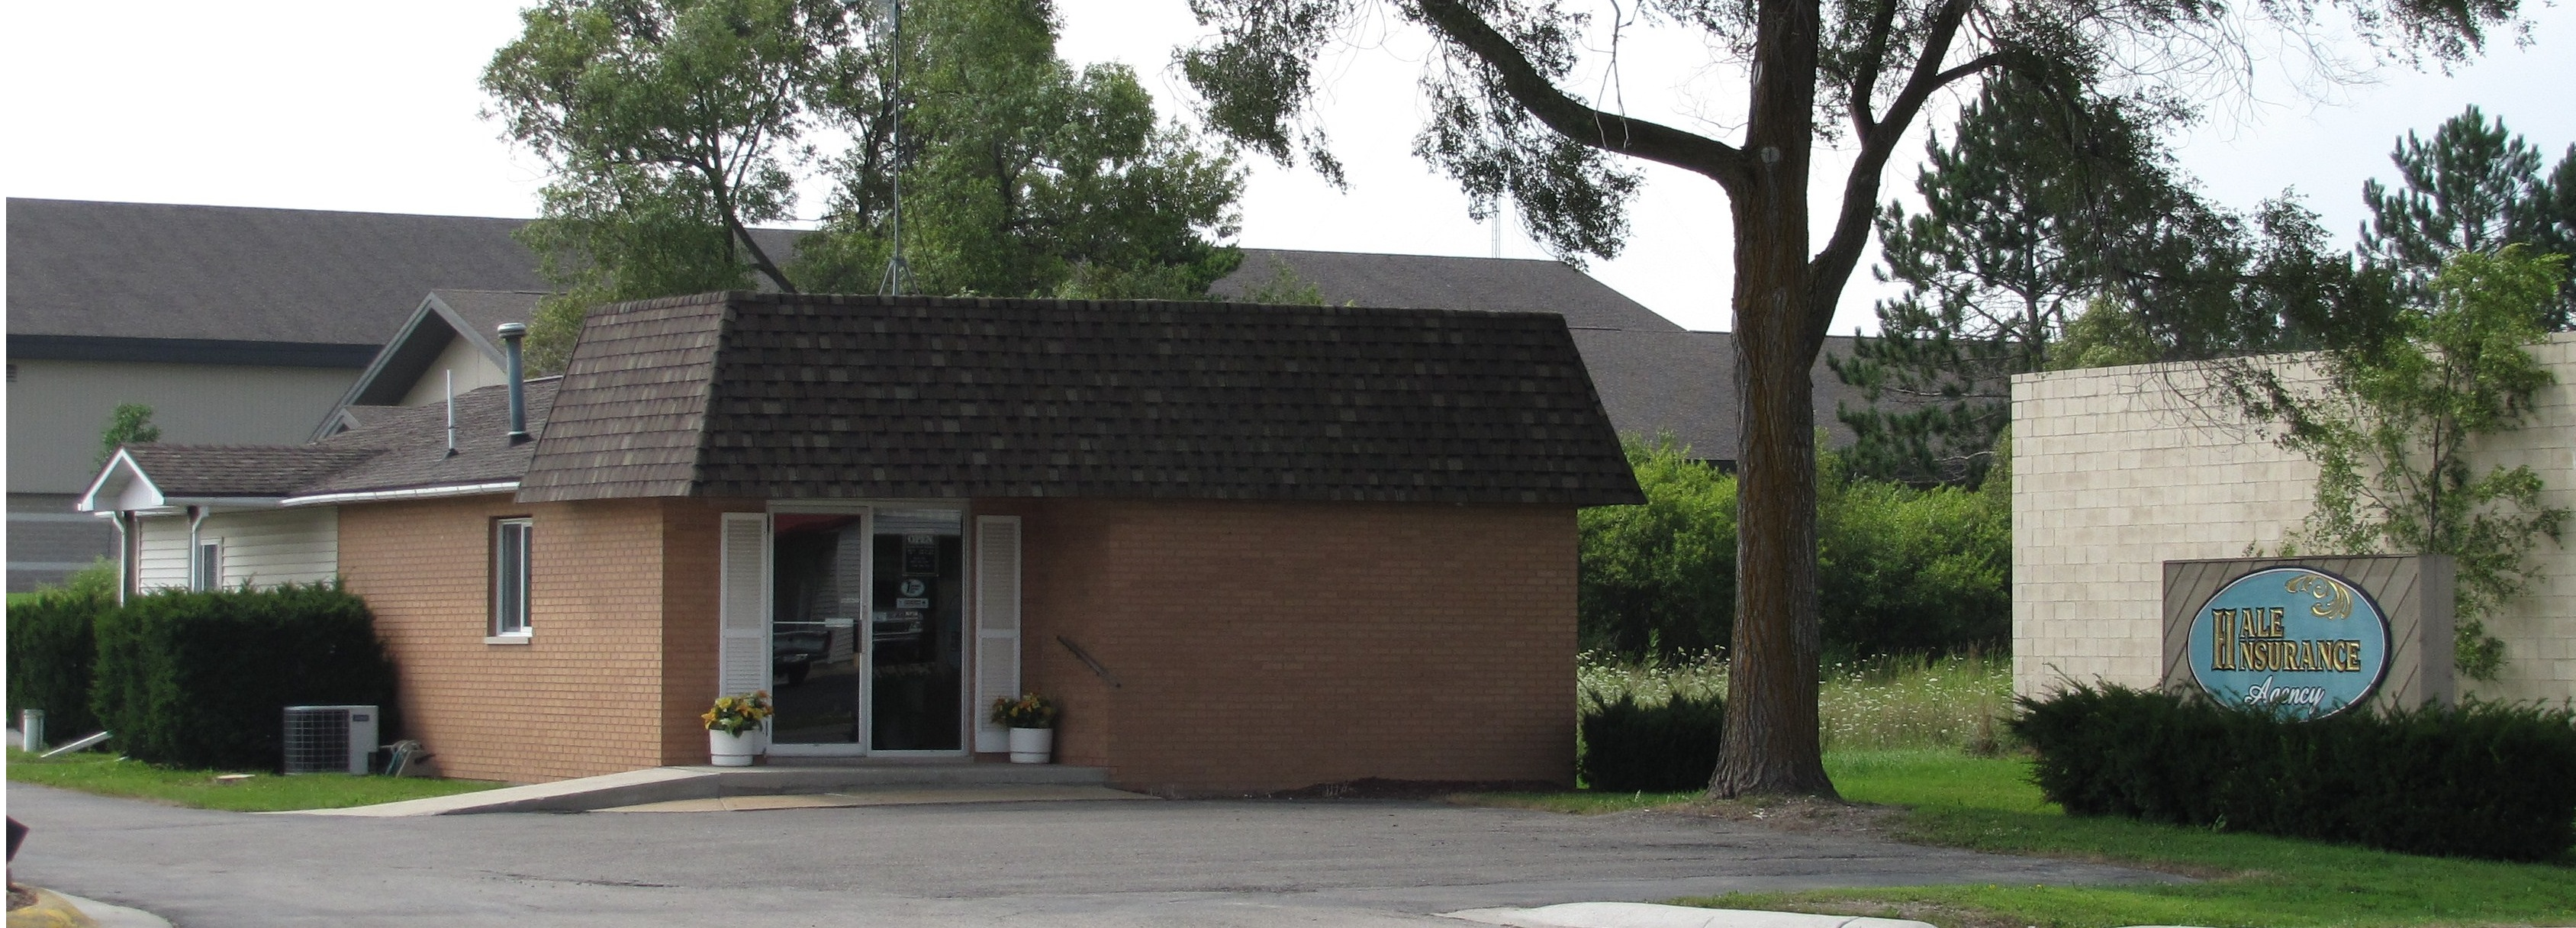 Image of Hale Insurance Agency